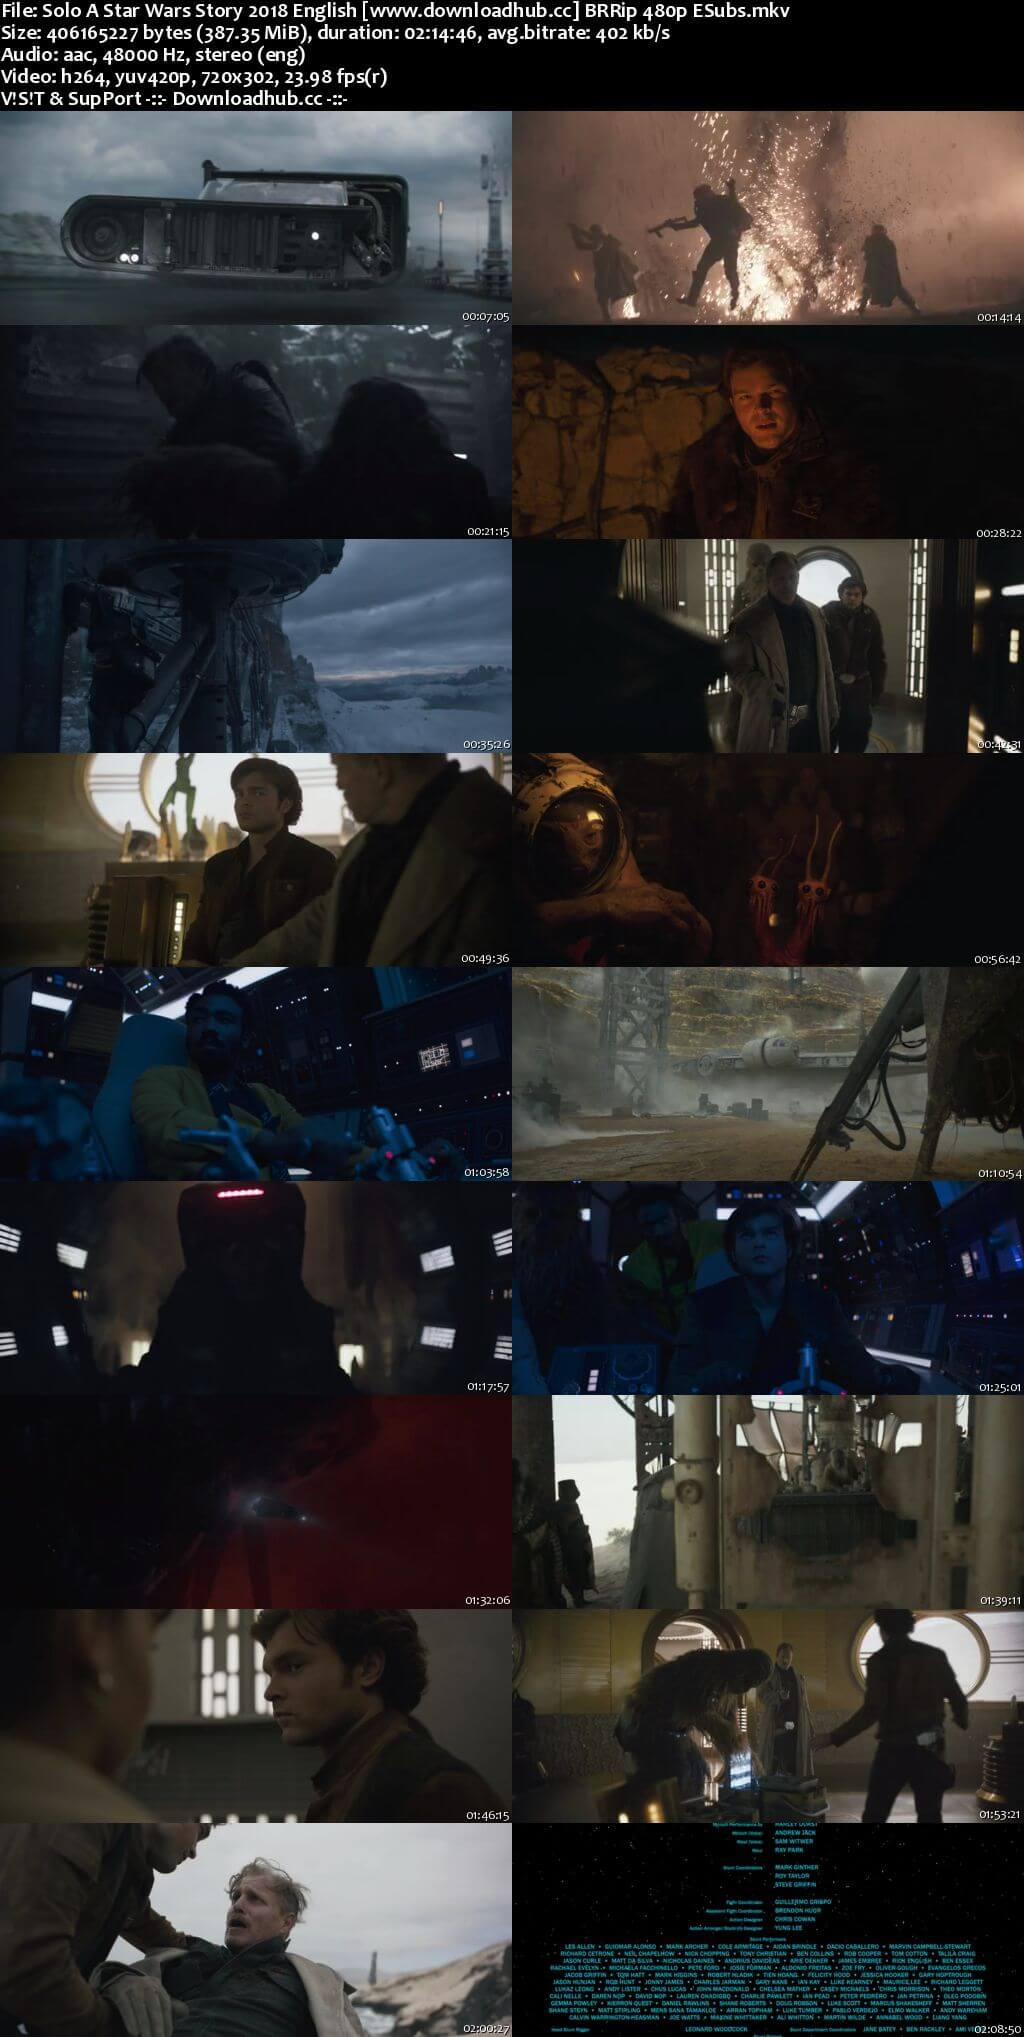 Solo A Star Wars Story 2018 English 350MB BRRip 480p ESubs